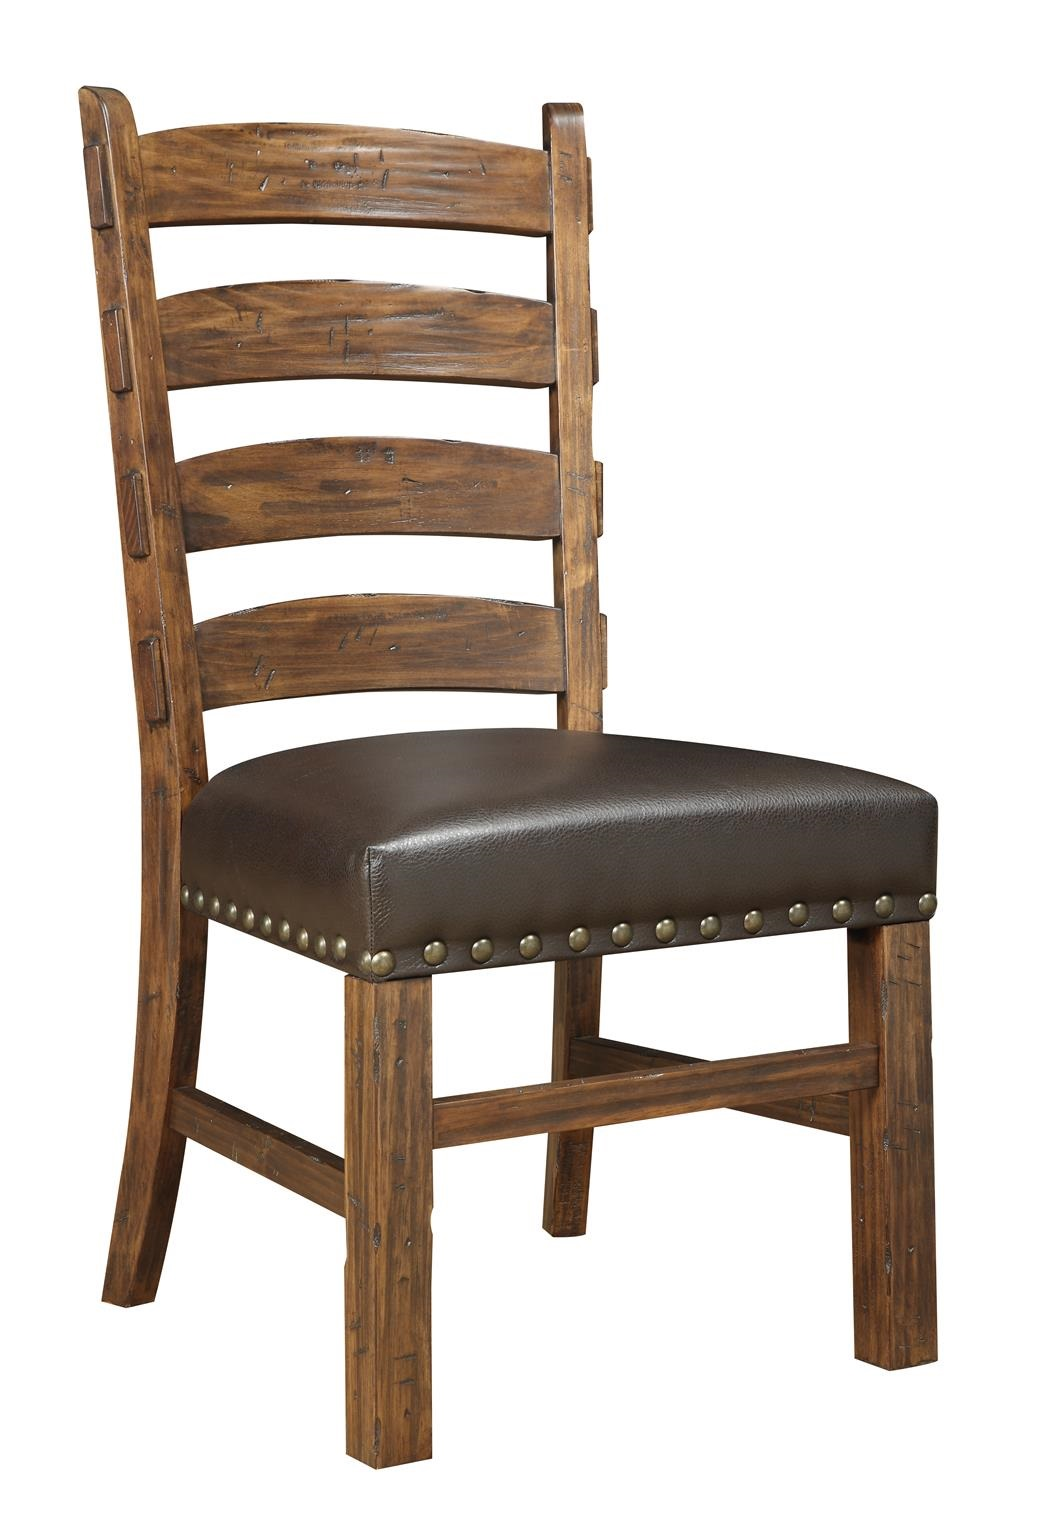 Chambers Creek Ladderback Side Chair by Emerald at Northeast Factory Direct